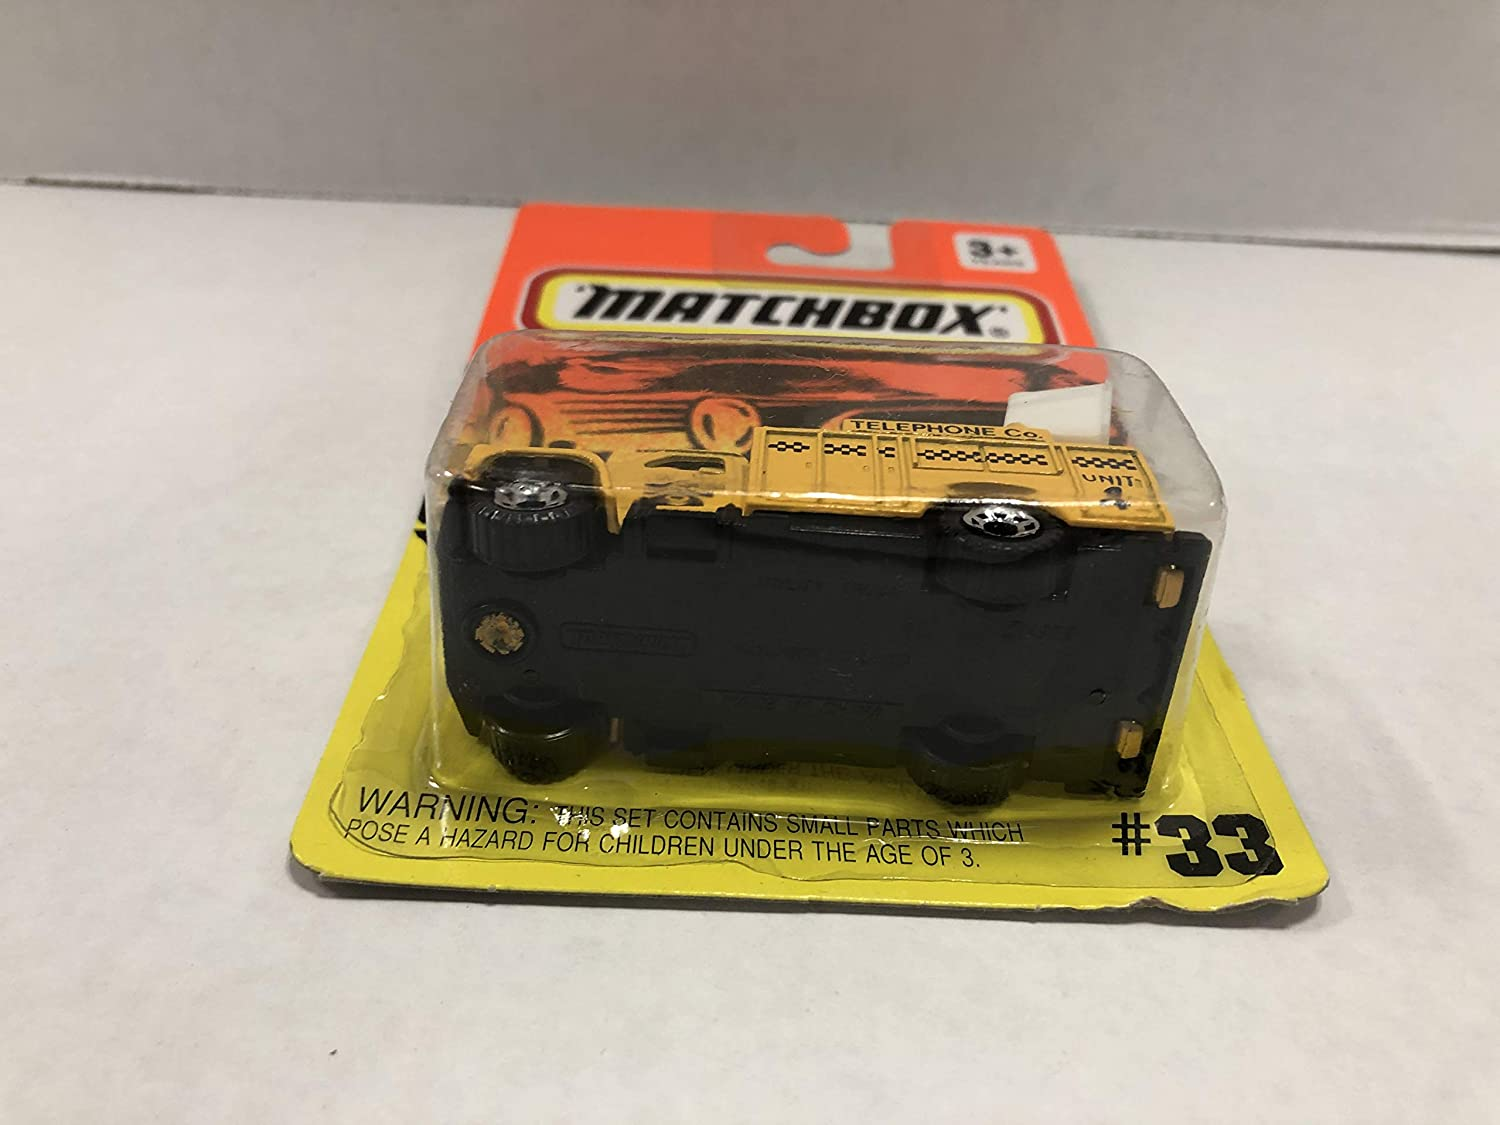 Telephone Co UTILITY TRUCK Moving Parts 1993 Matchbox 1//64 scale diecast #33